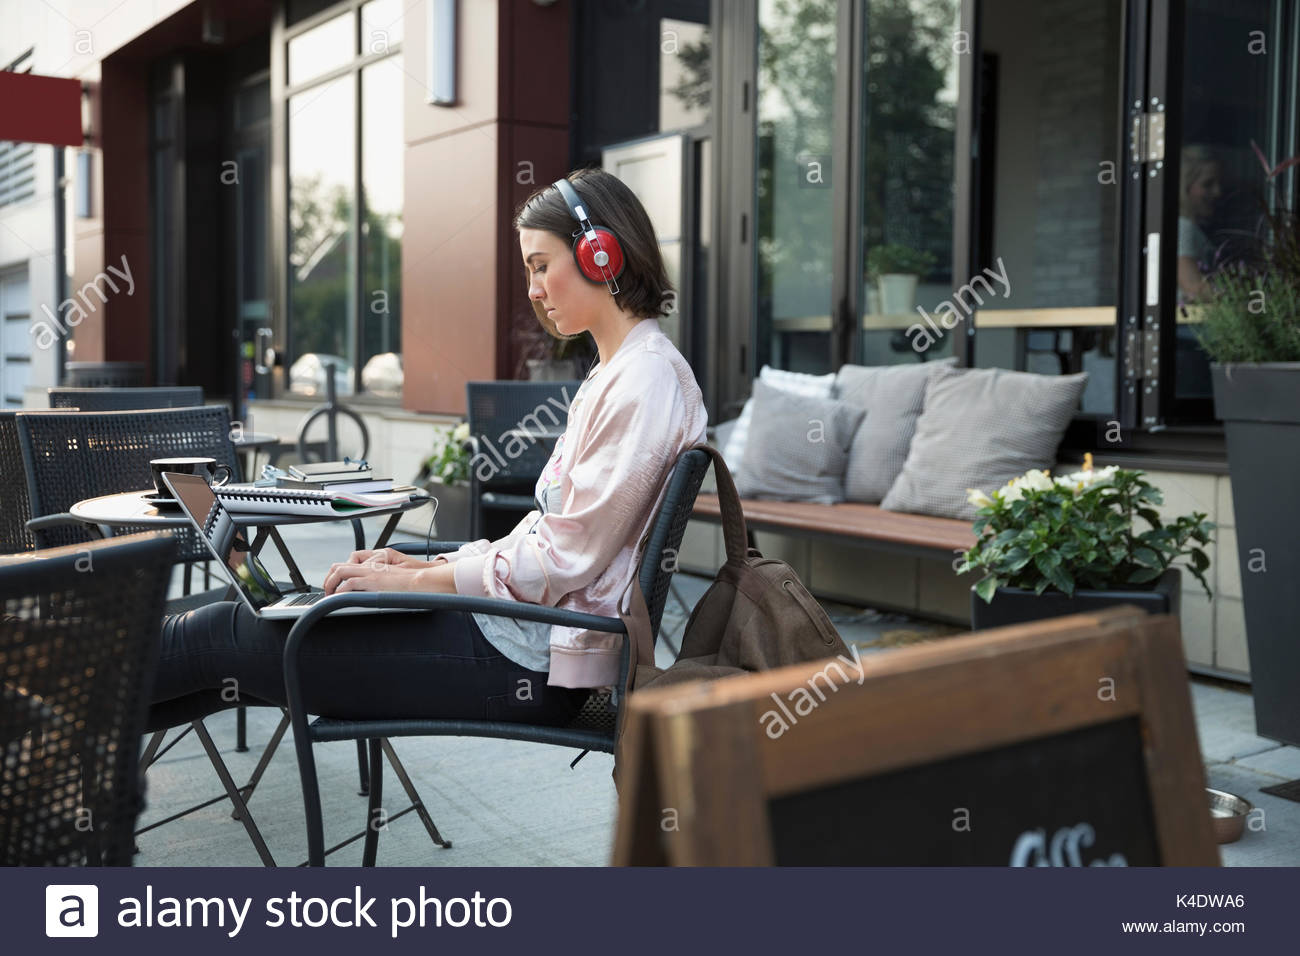 Brunette woman with headphones listening to music and using laptop at sidewalk cafe Photo Stock